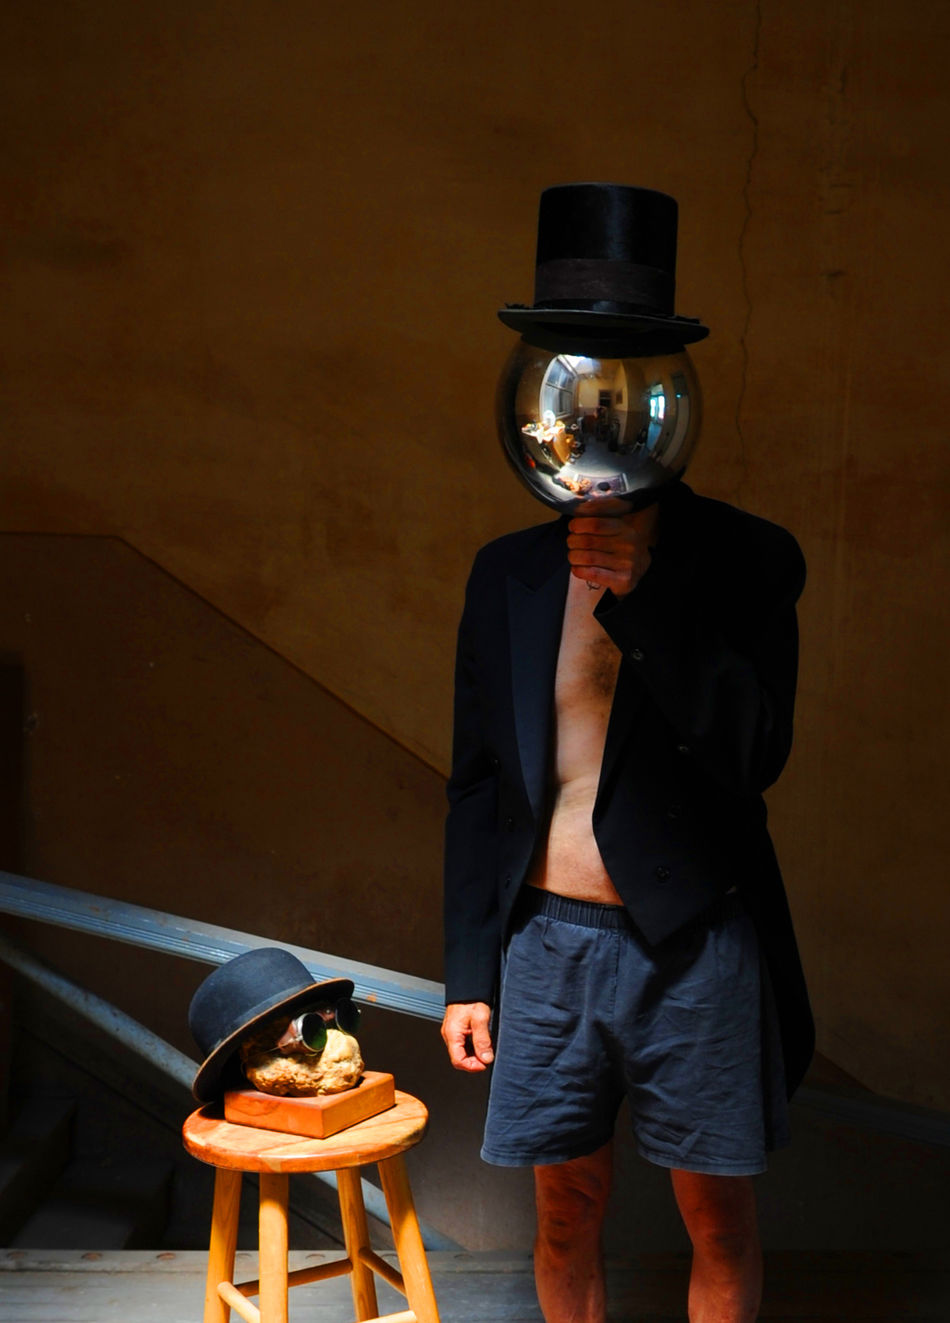 Bubble Head Innerspace Magical Places Mirror Ball Mirror Mask Mysteryman Tophats Tux Jacket